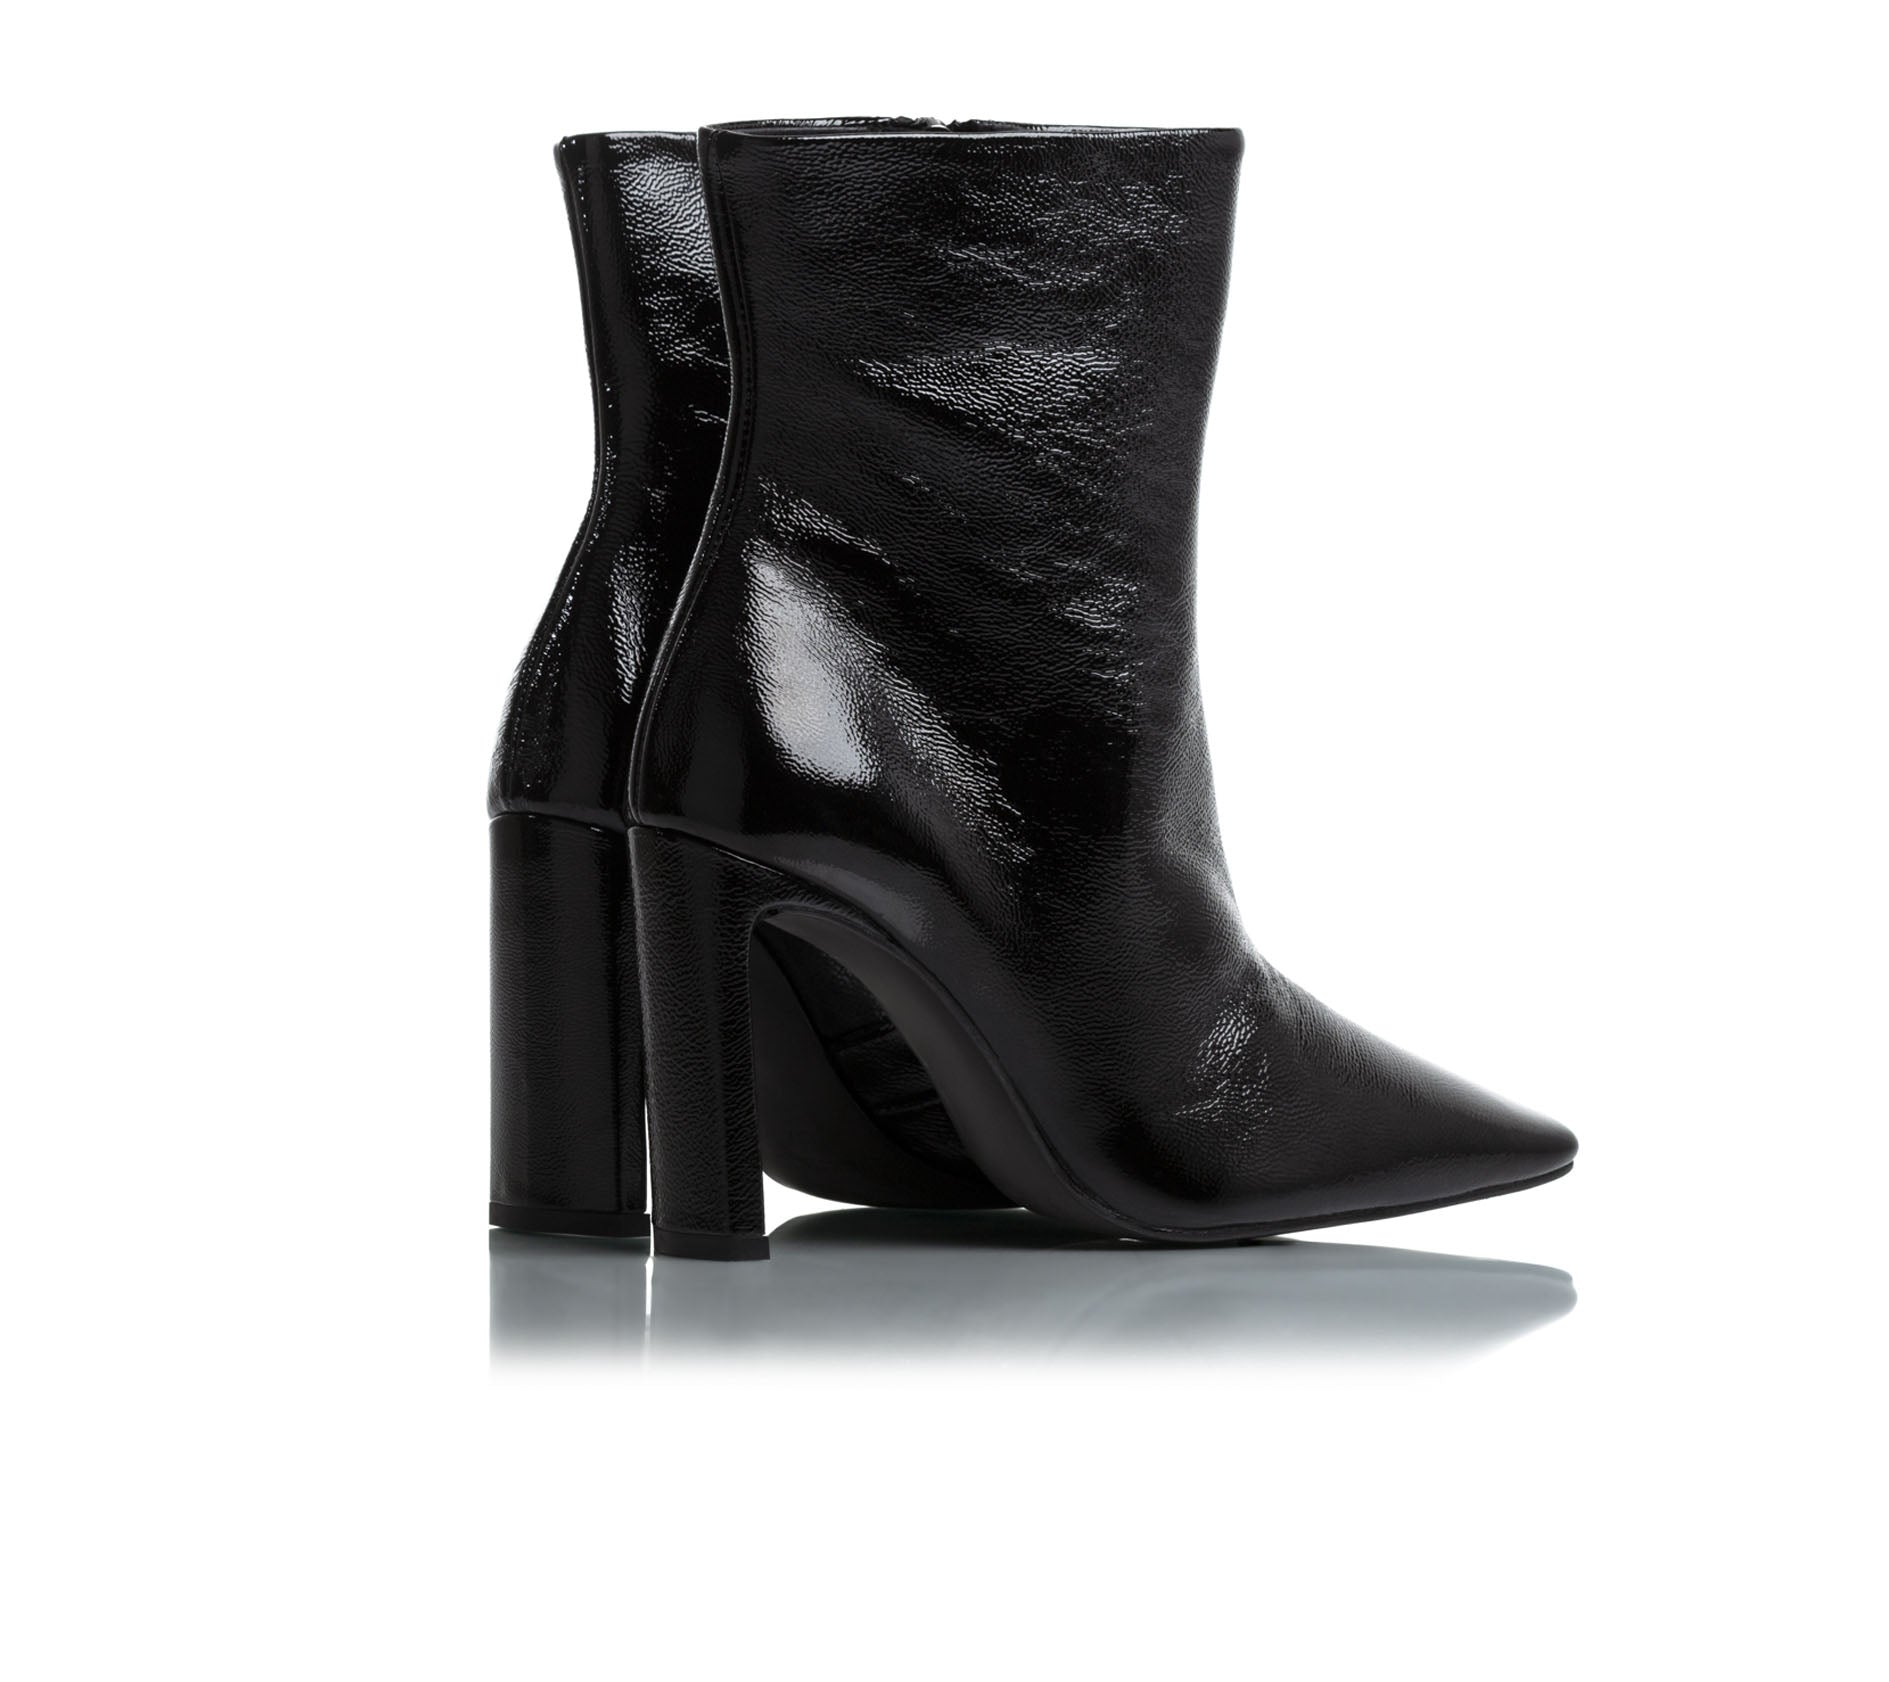 Lyon Black Naplack Leather Ankle Boots